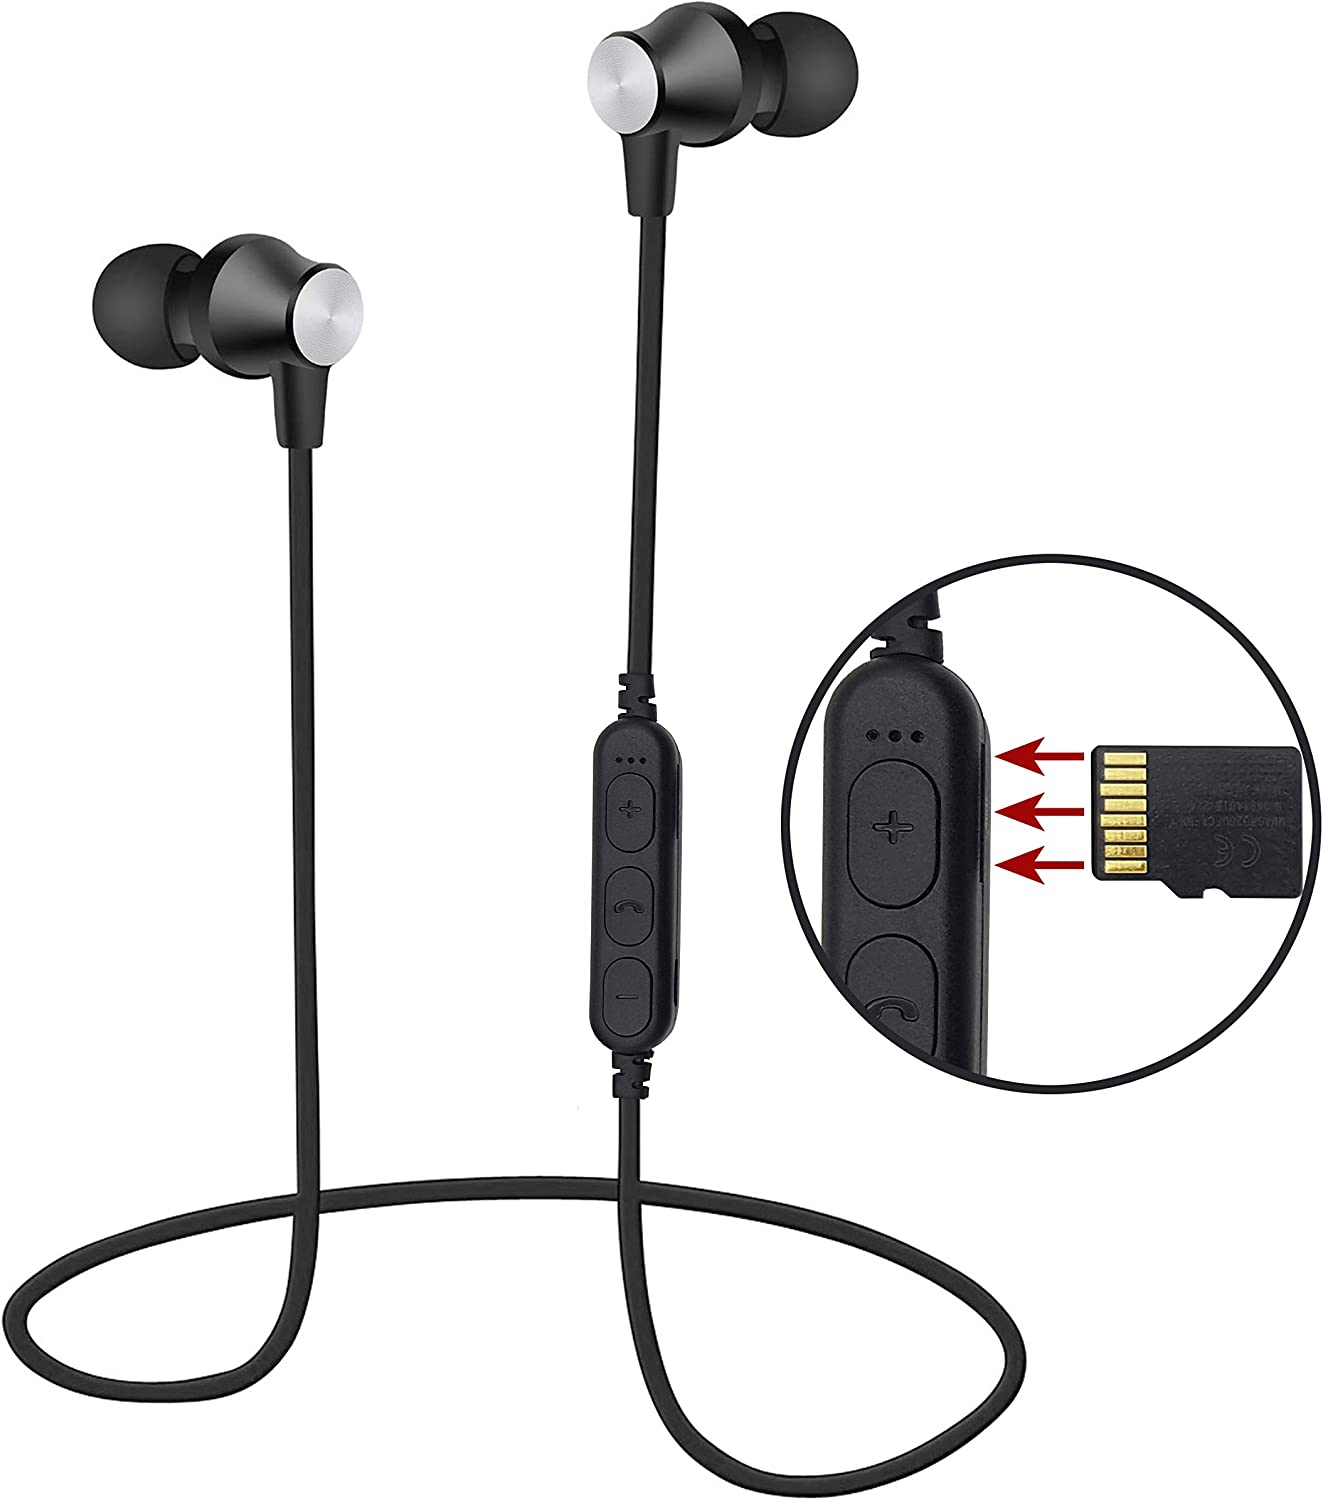 Areabi Falcon - Auriculares Bluetooth magnéticos con reproductor de MP3, Bluetooth 5.0, micrófono integrado HD, auriculares Bluetooth deportivos para smartphone iPhone Android Samsung